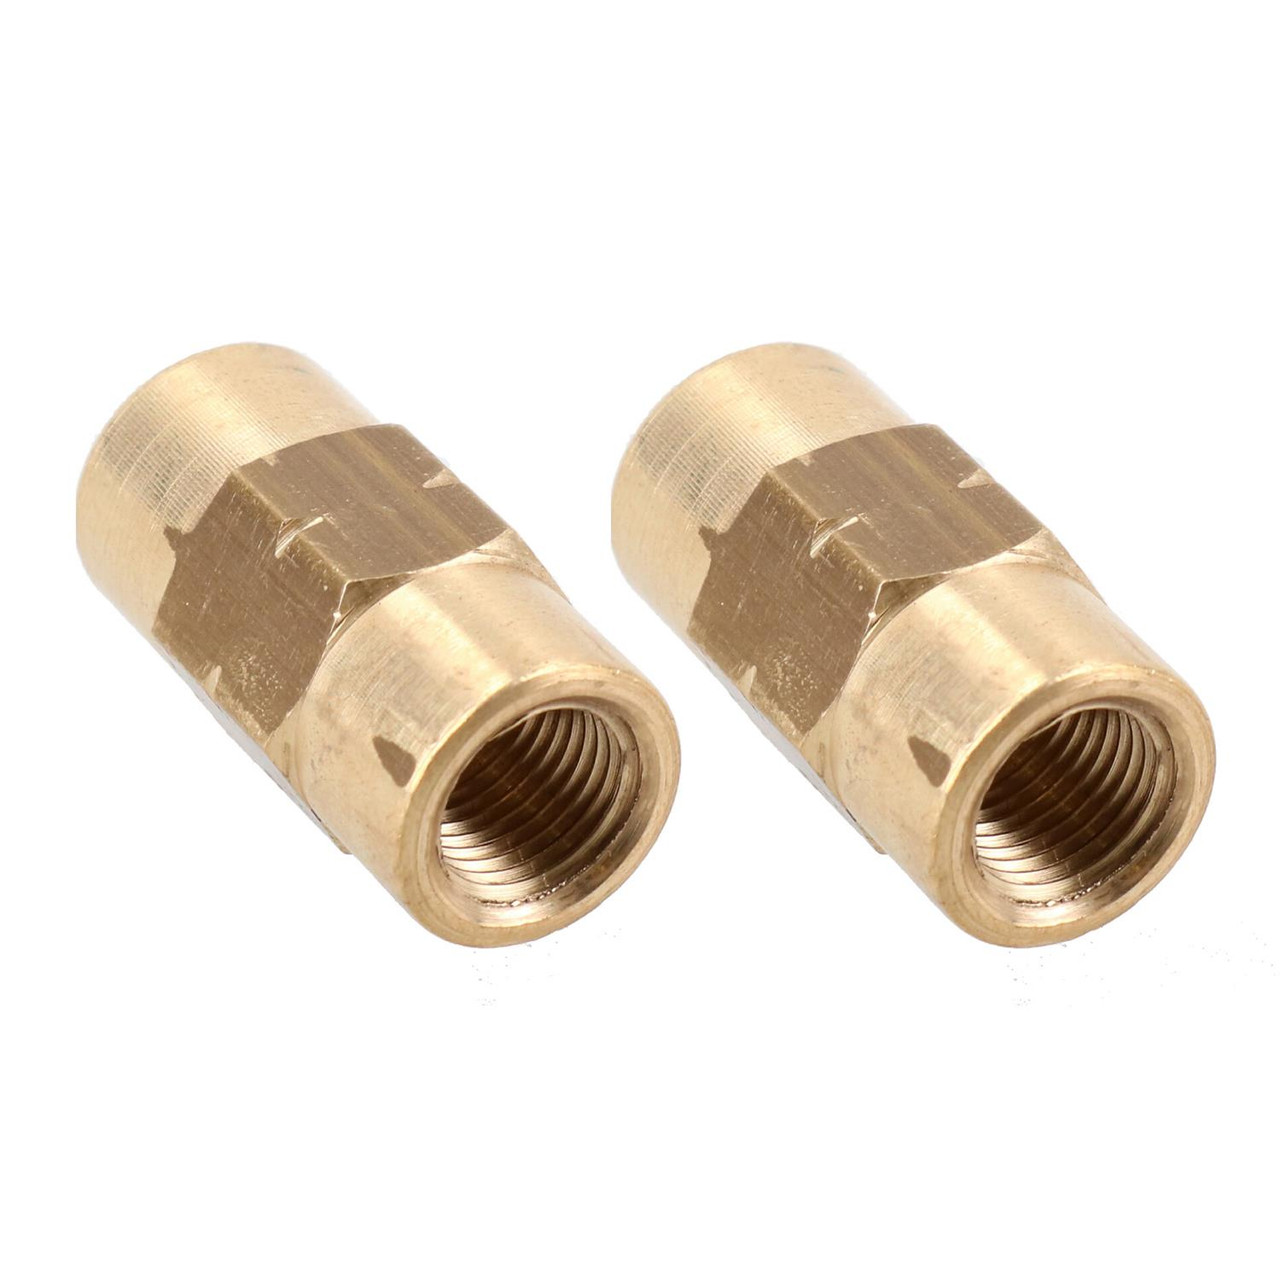 "M10 x 1mm Brass Inline Brake Pipe Fitting Joiner Connector For 3/16"" Pipe 2pc"